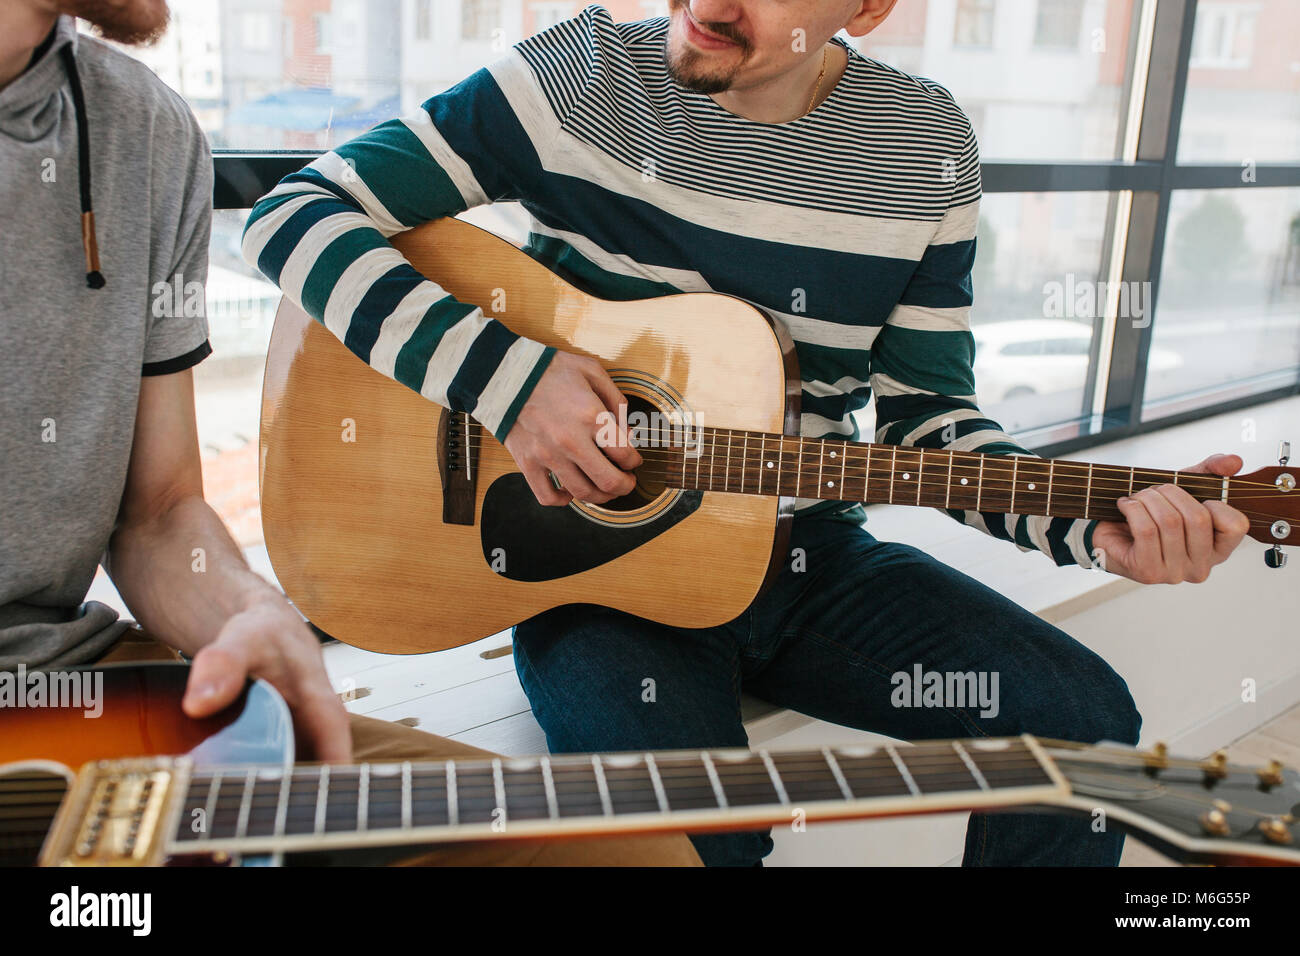 Learning to play the guitar. Music education and extracurricular lessons. Stock Photo